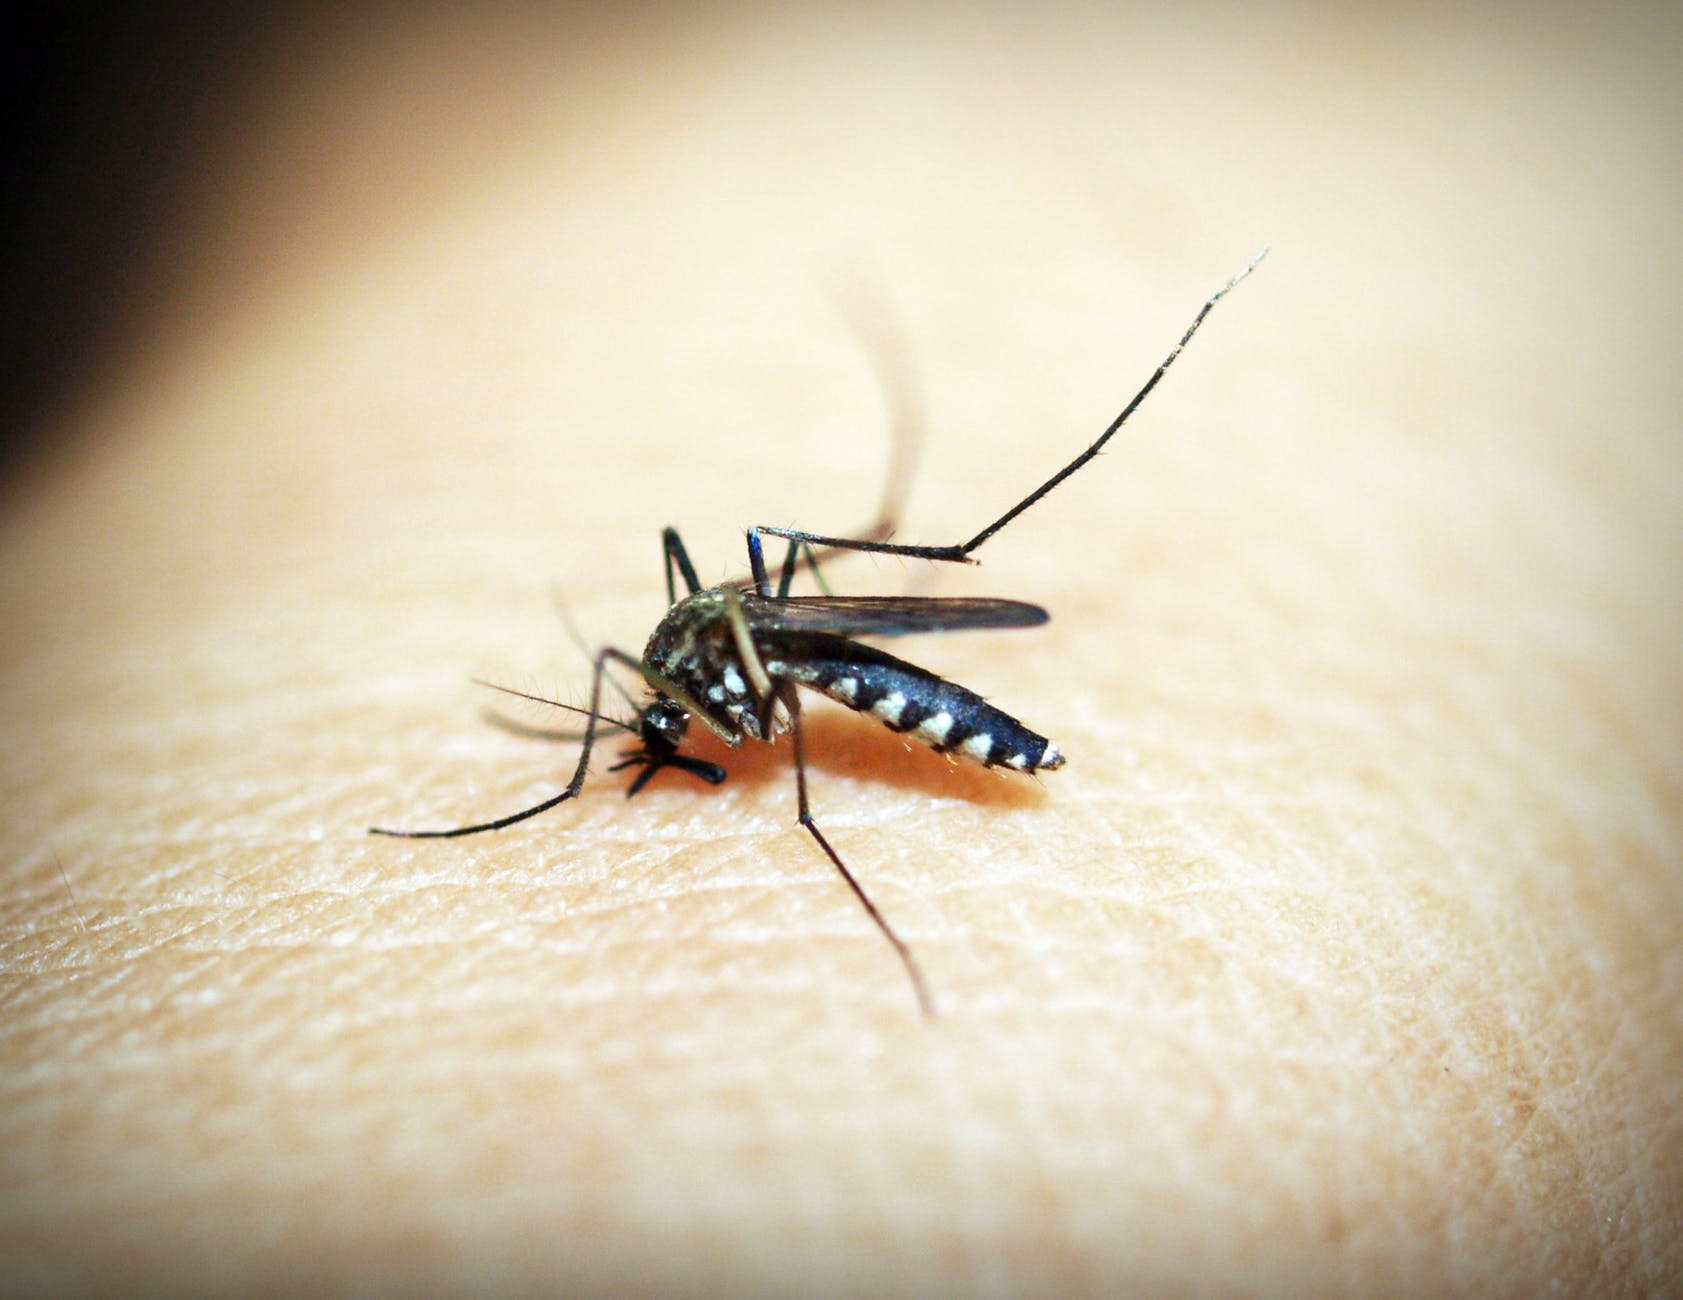 Don't let summer bugs get you down. Read on to learn more about how to prevent bug bites this summer!